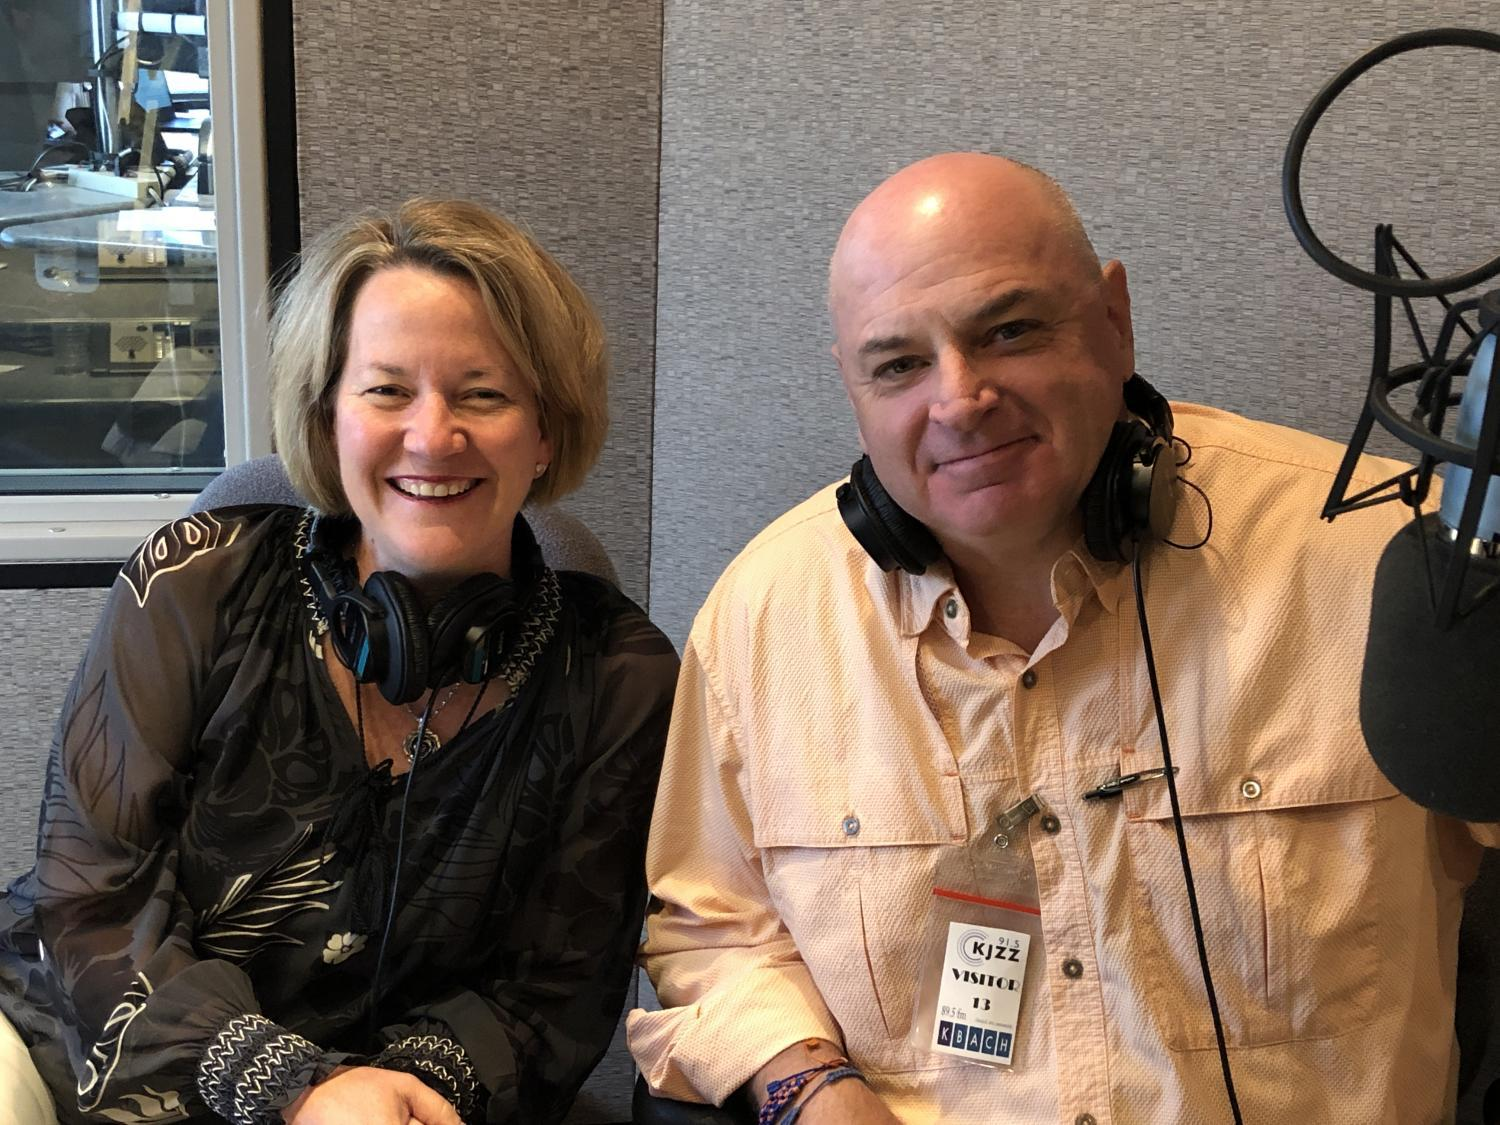 Kris Mayes (left) and Chuck Coughlin spoke to KJZZ